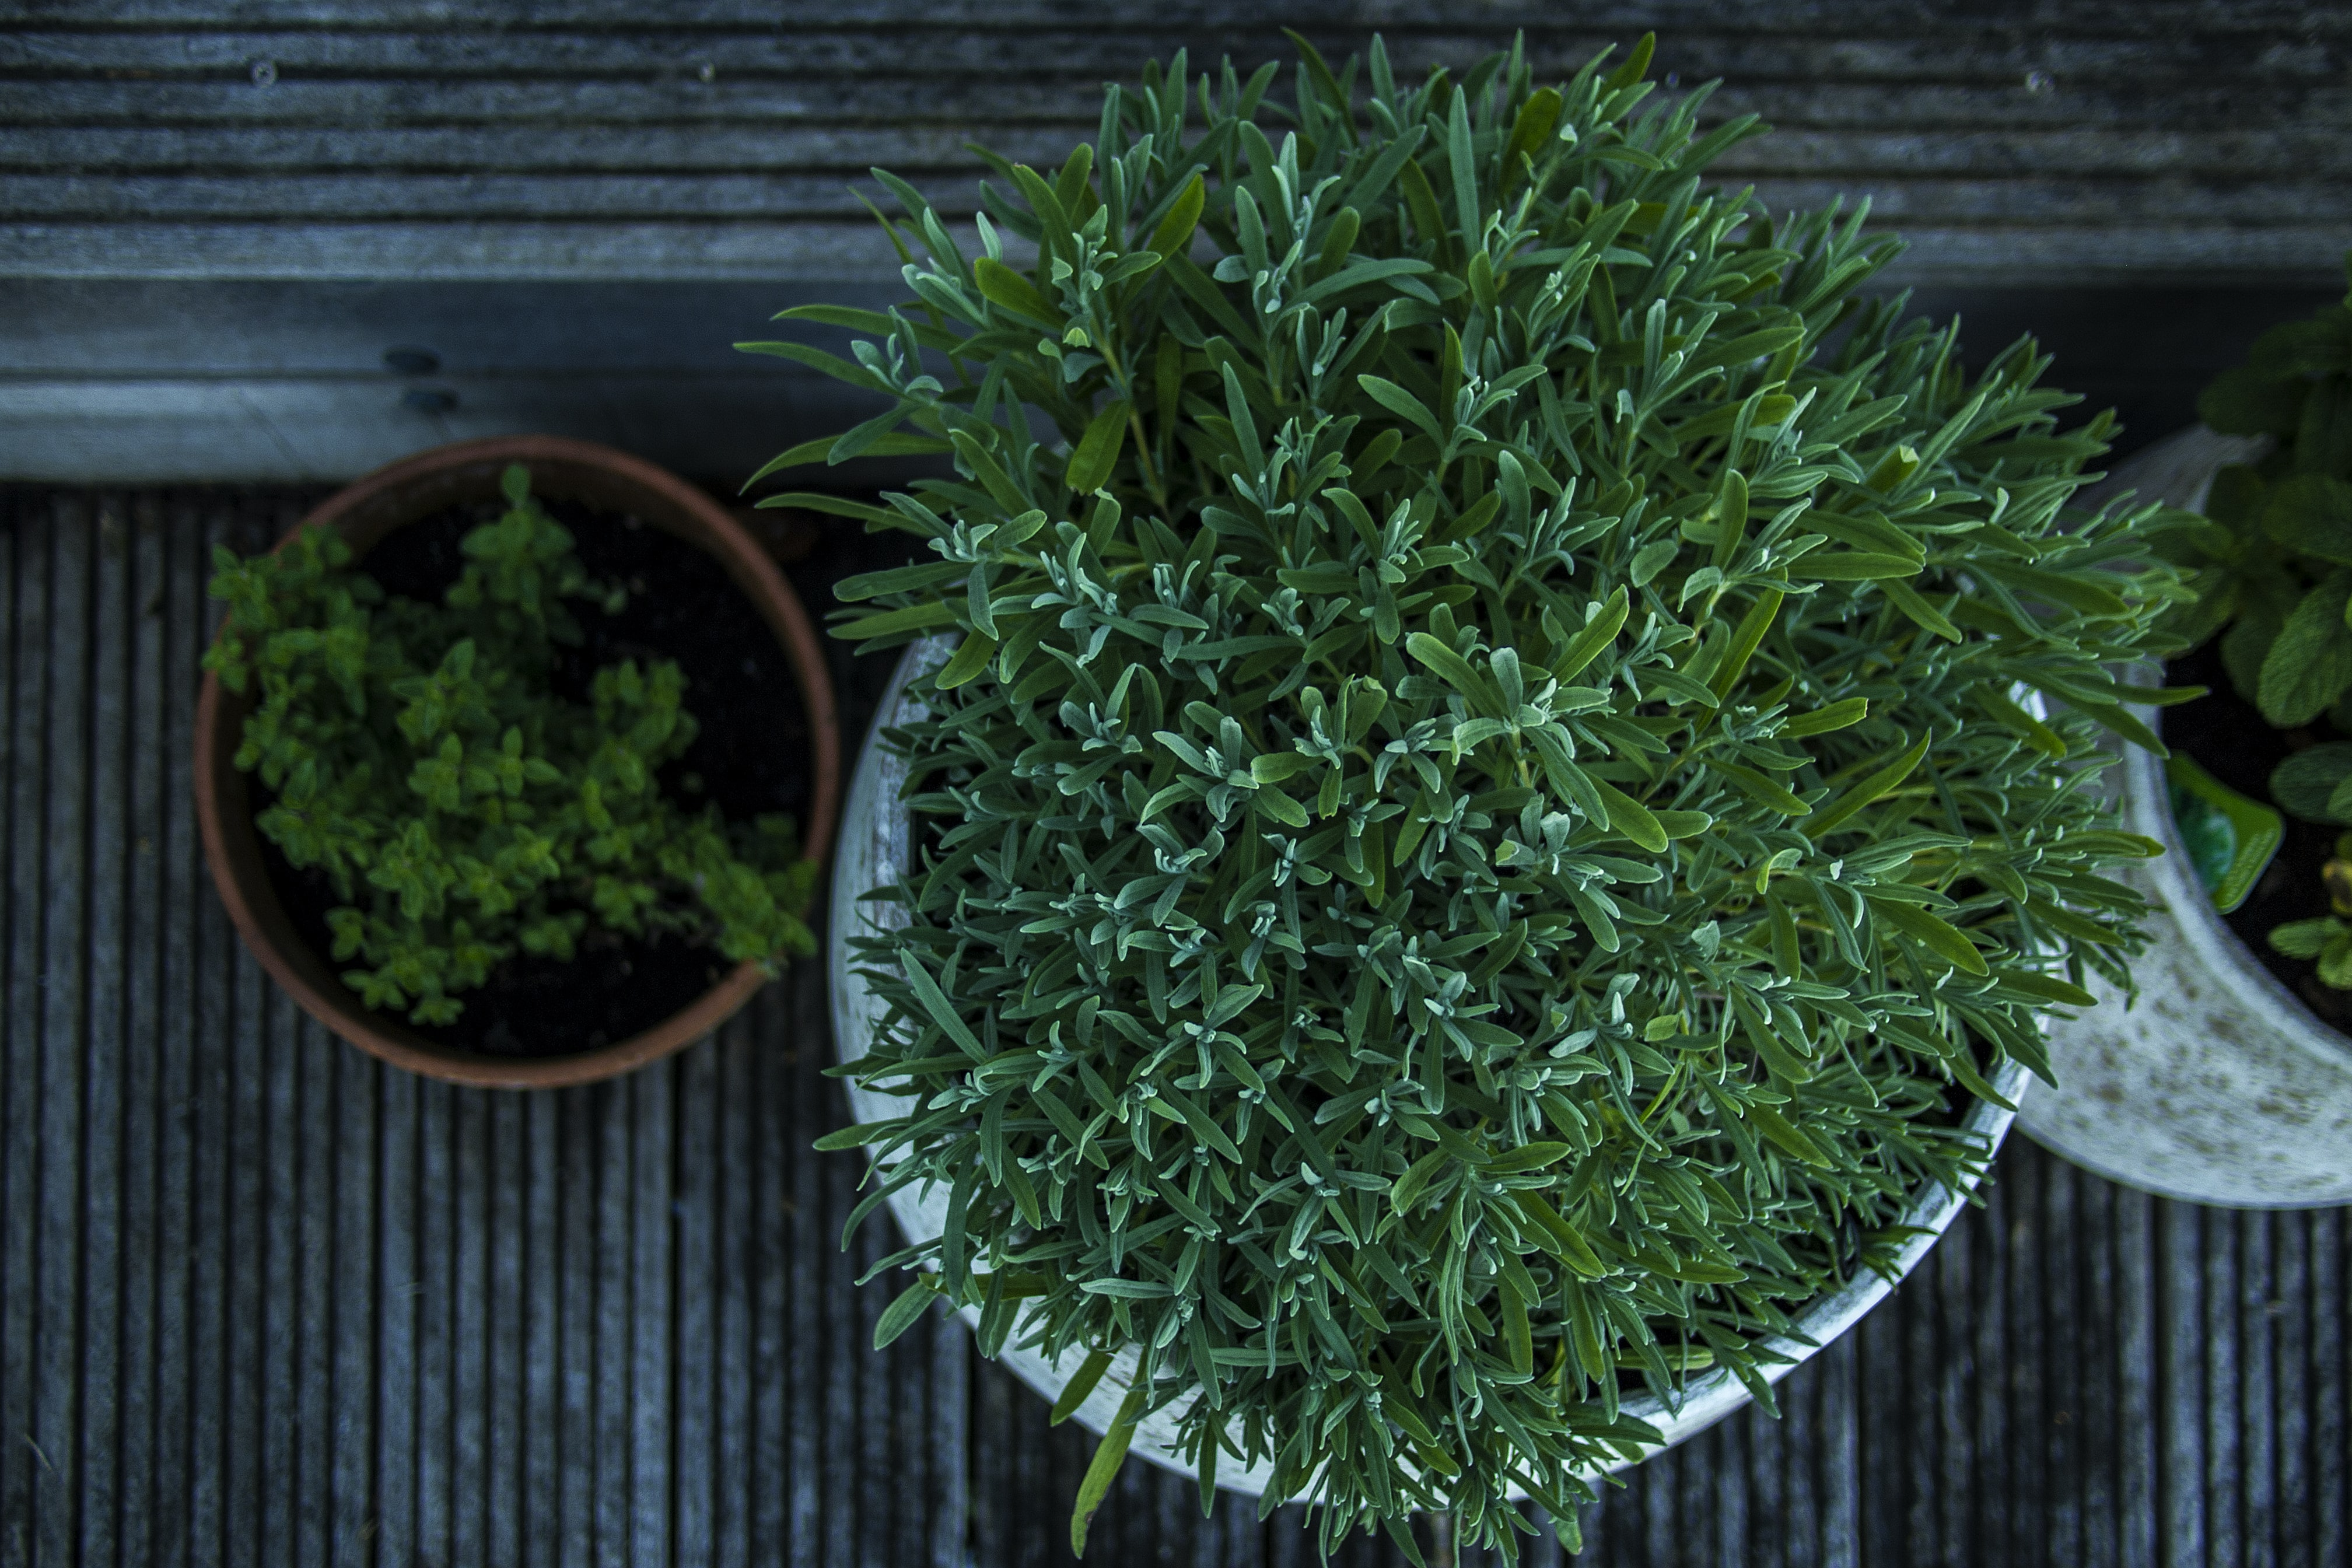 Overhead shot of green potted plants on a home patio